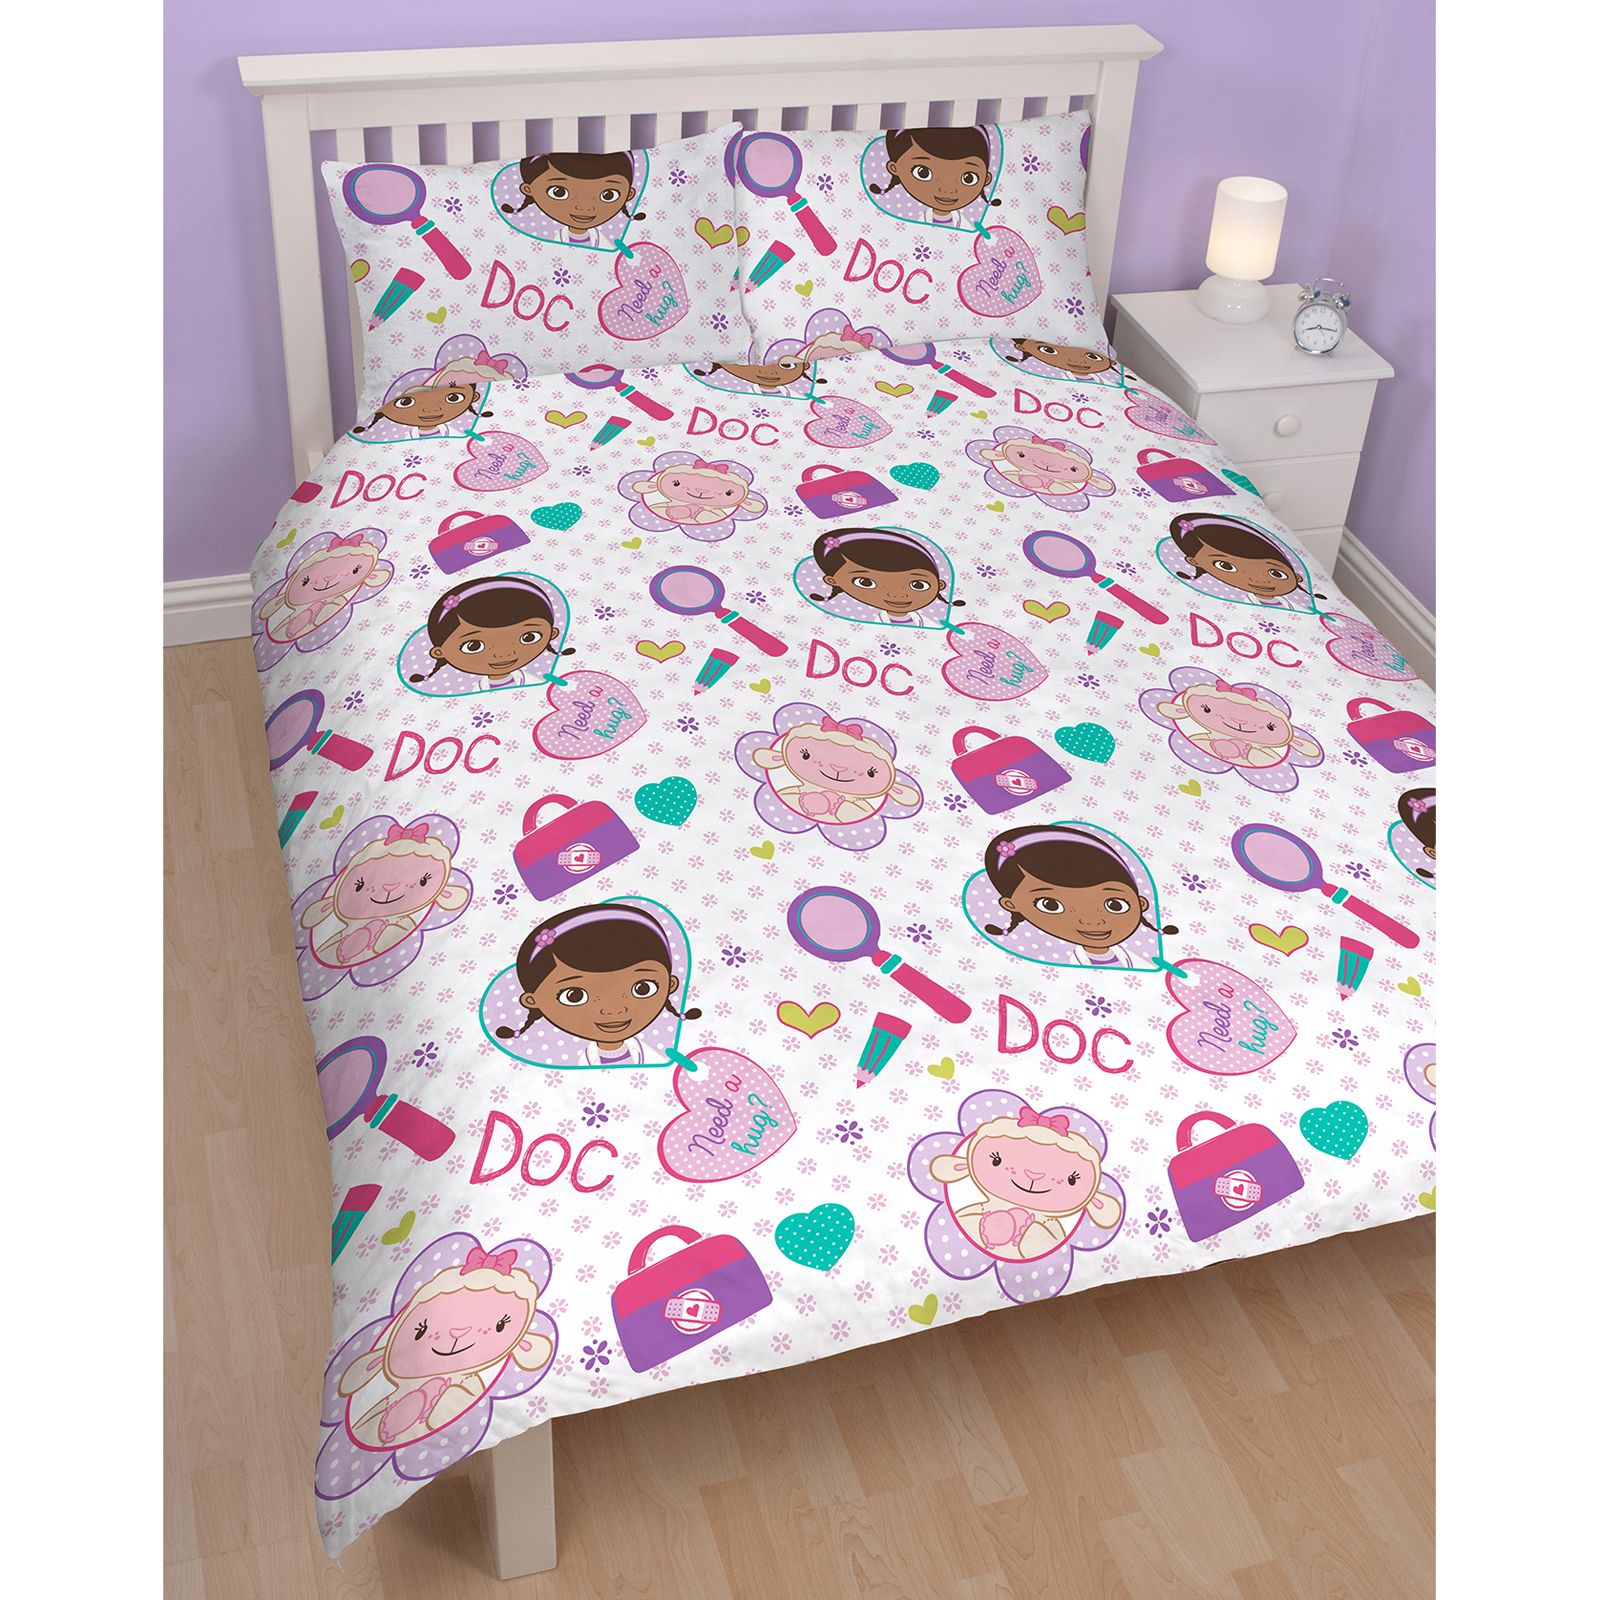 doc mcstuffins chair smyths how to make cushions for kitchen chairs bedding single and double duvet cover sets